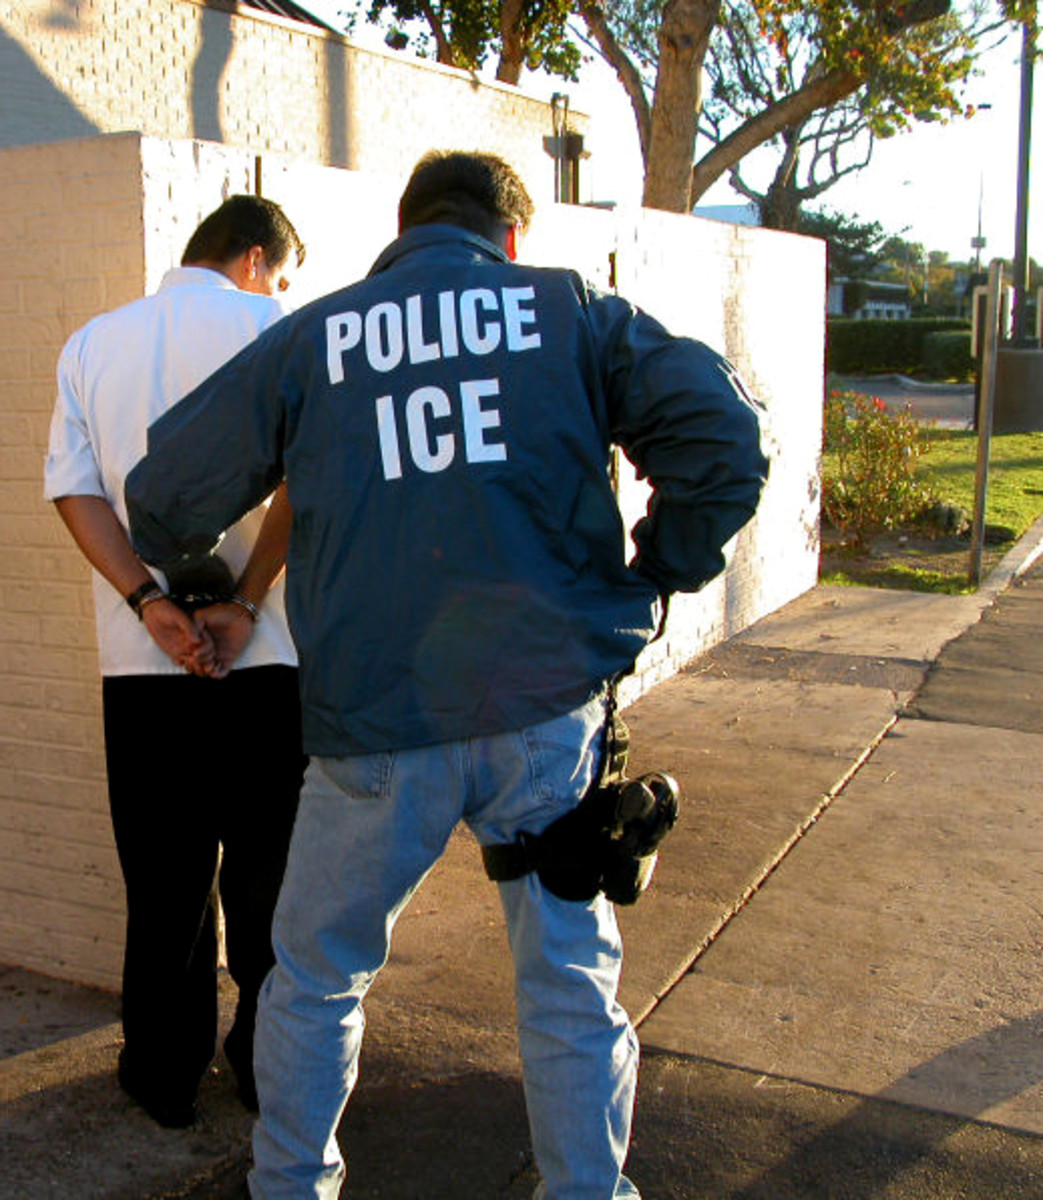 Opposition Increases Against Immigration Screenings In